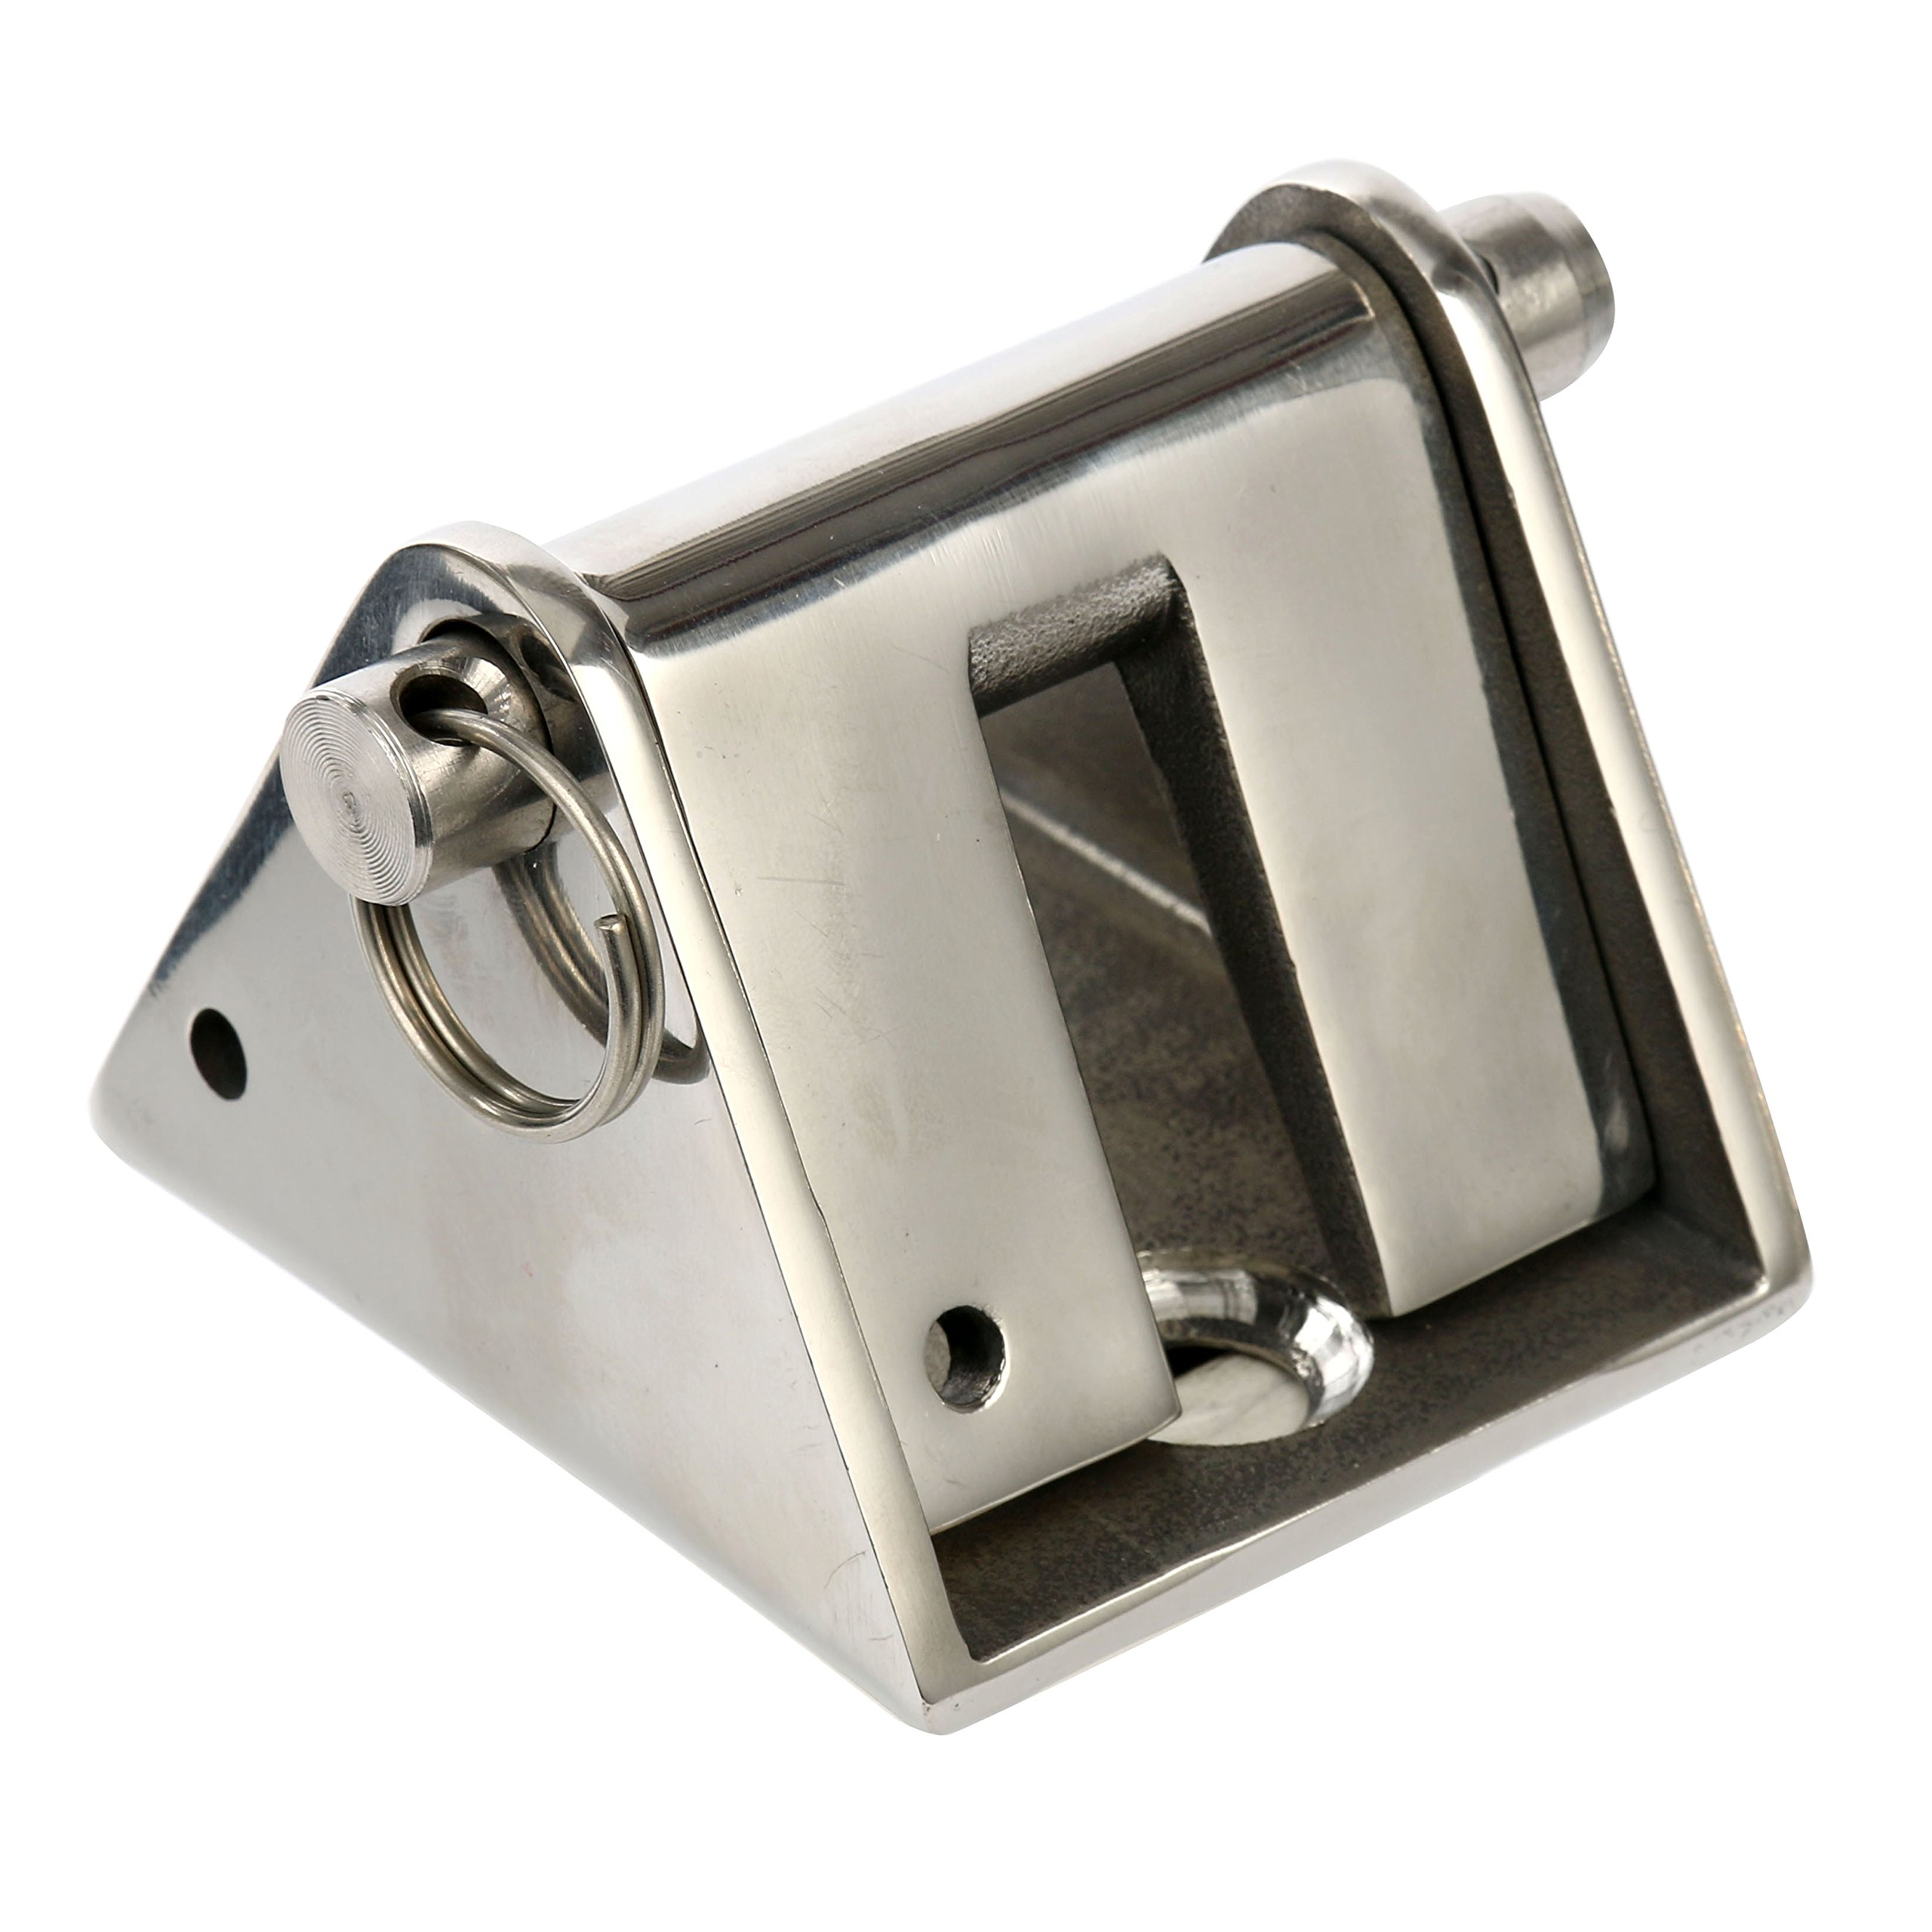 Amarine Made Marine Boat Stainless Steel Chain Stopper for 5/16'' to 3/8'' Chain by Amarine Made